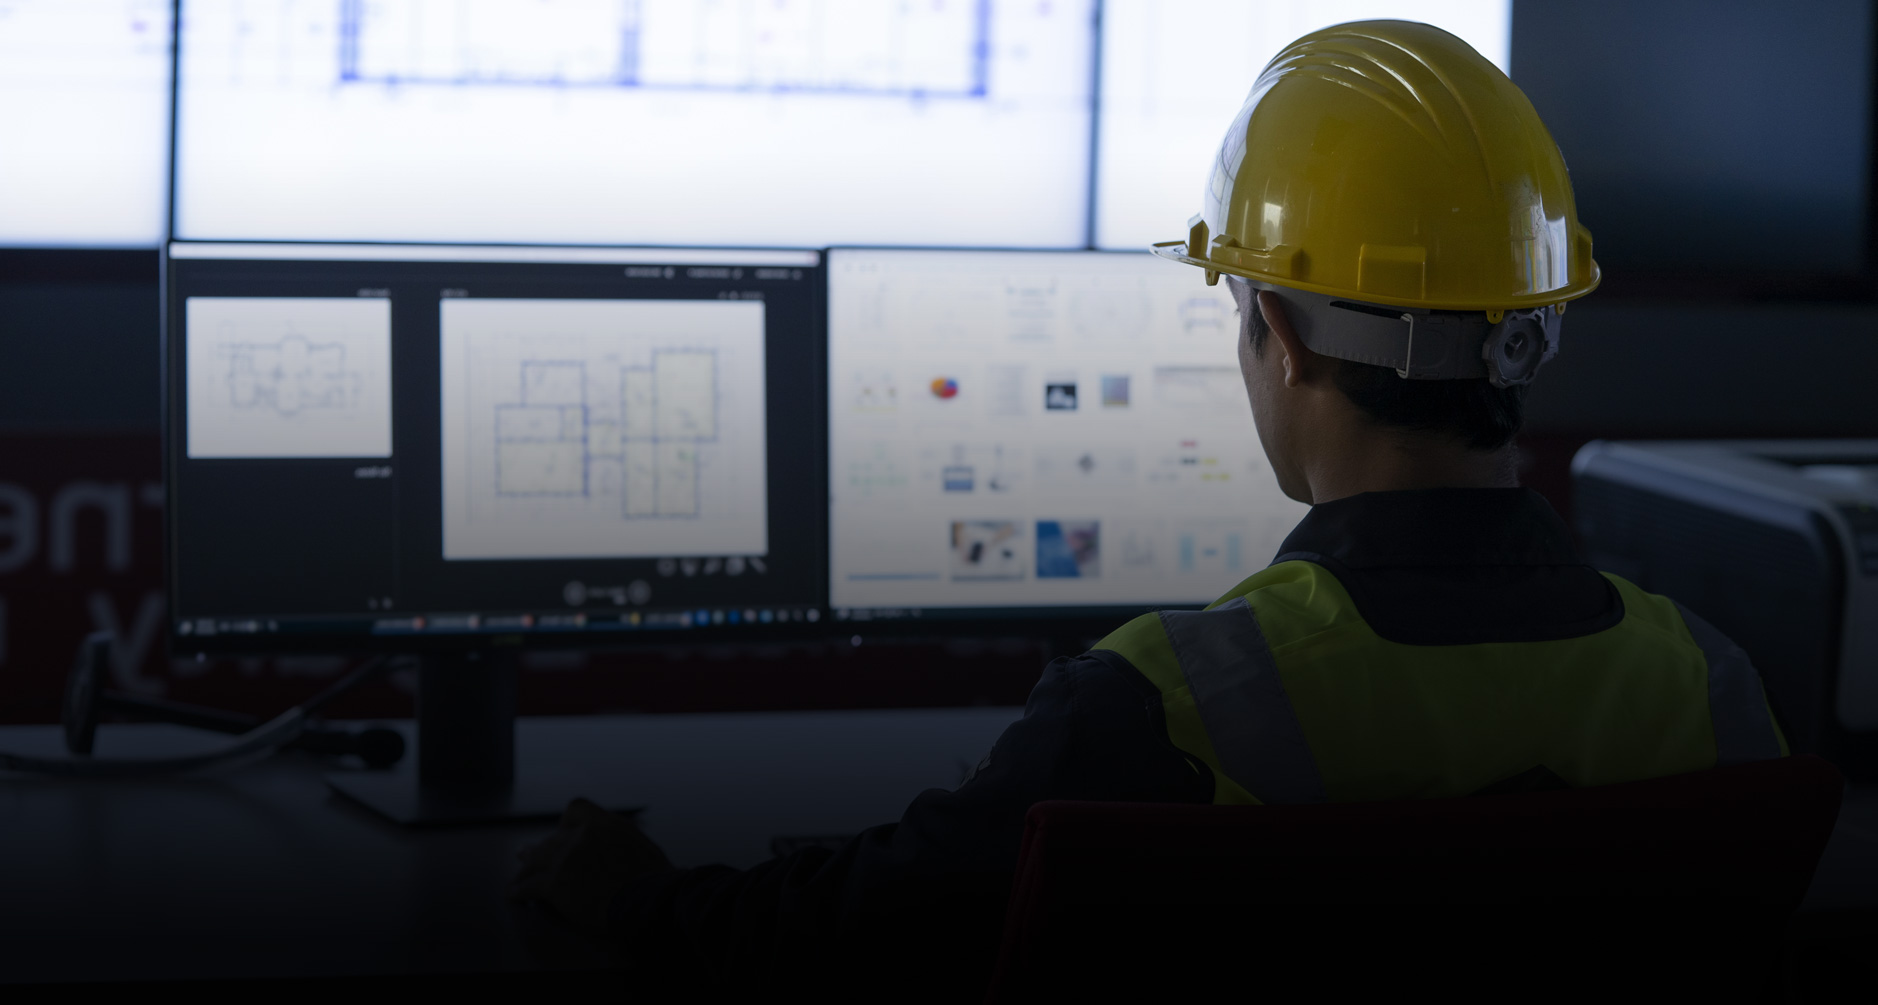 How Industrial Control Systems Make Businesses Cyber Exposed